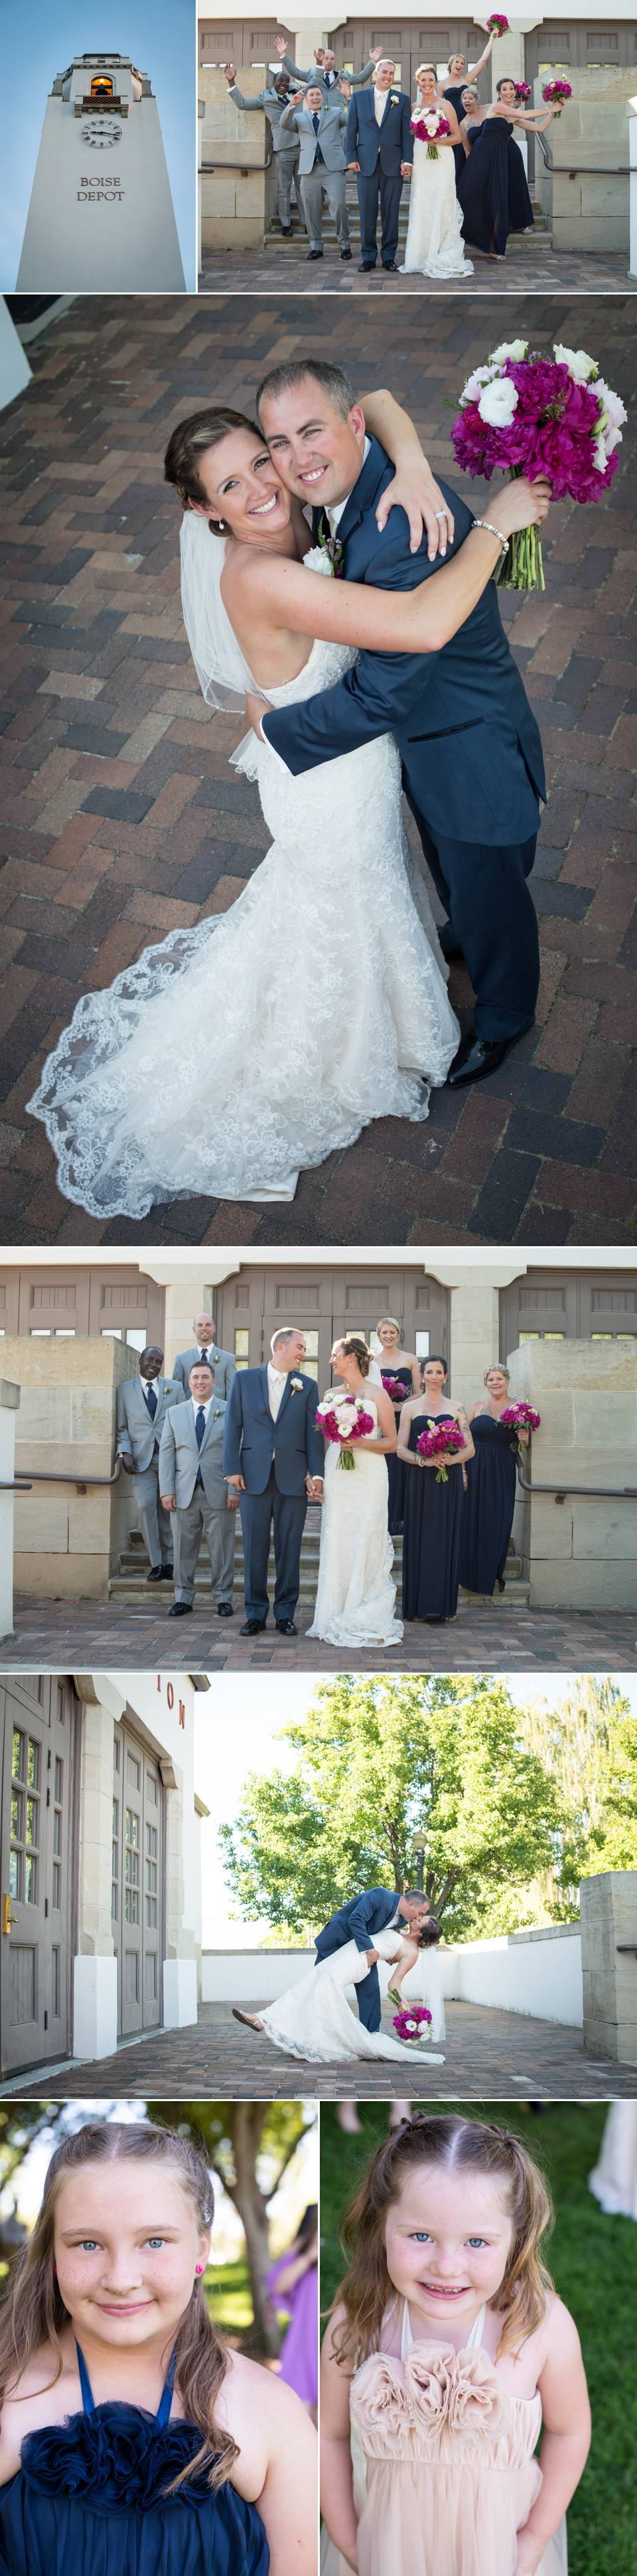 linsey and trev wedding blog 7